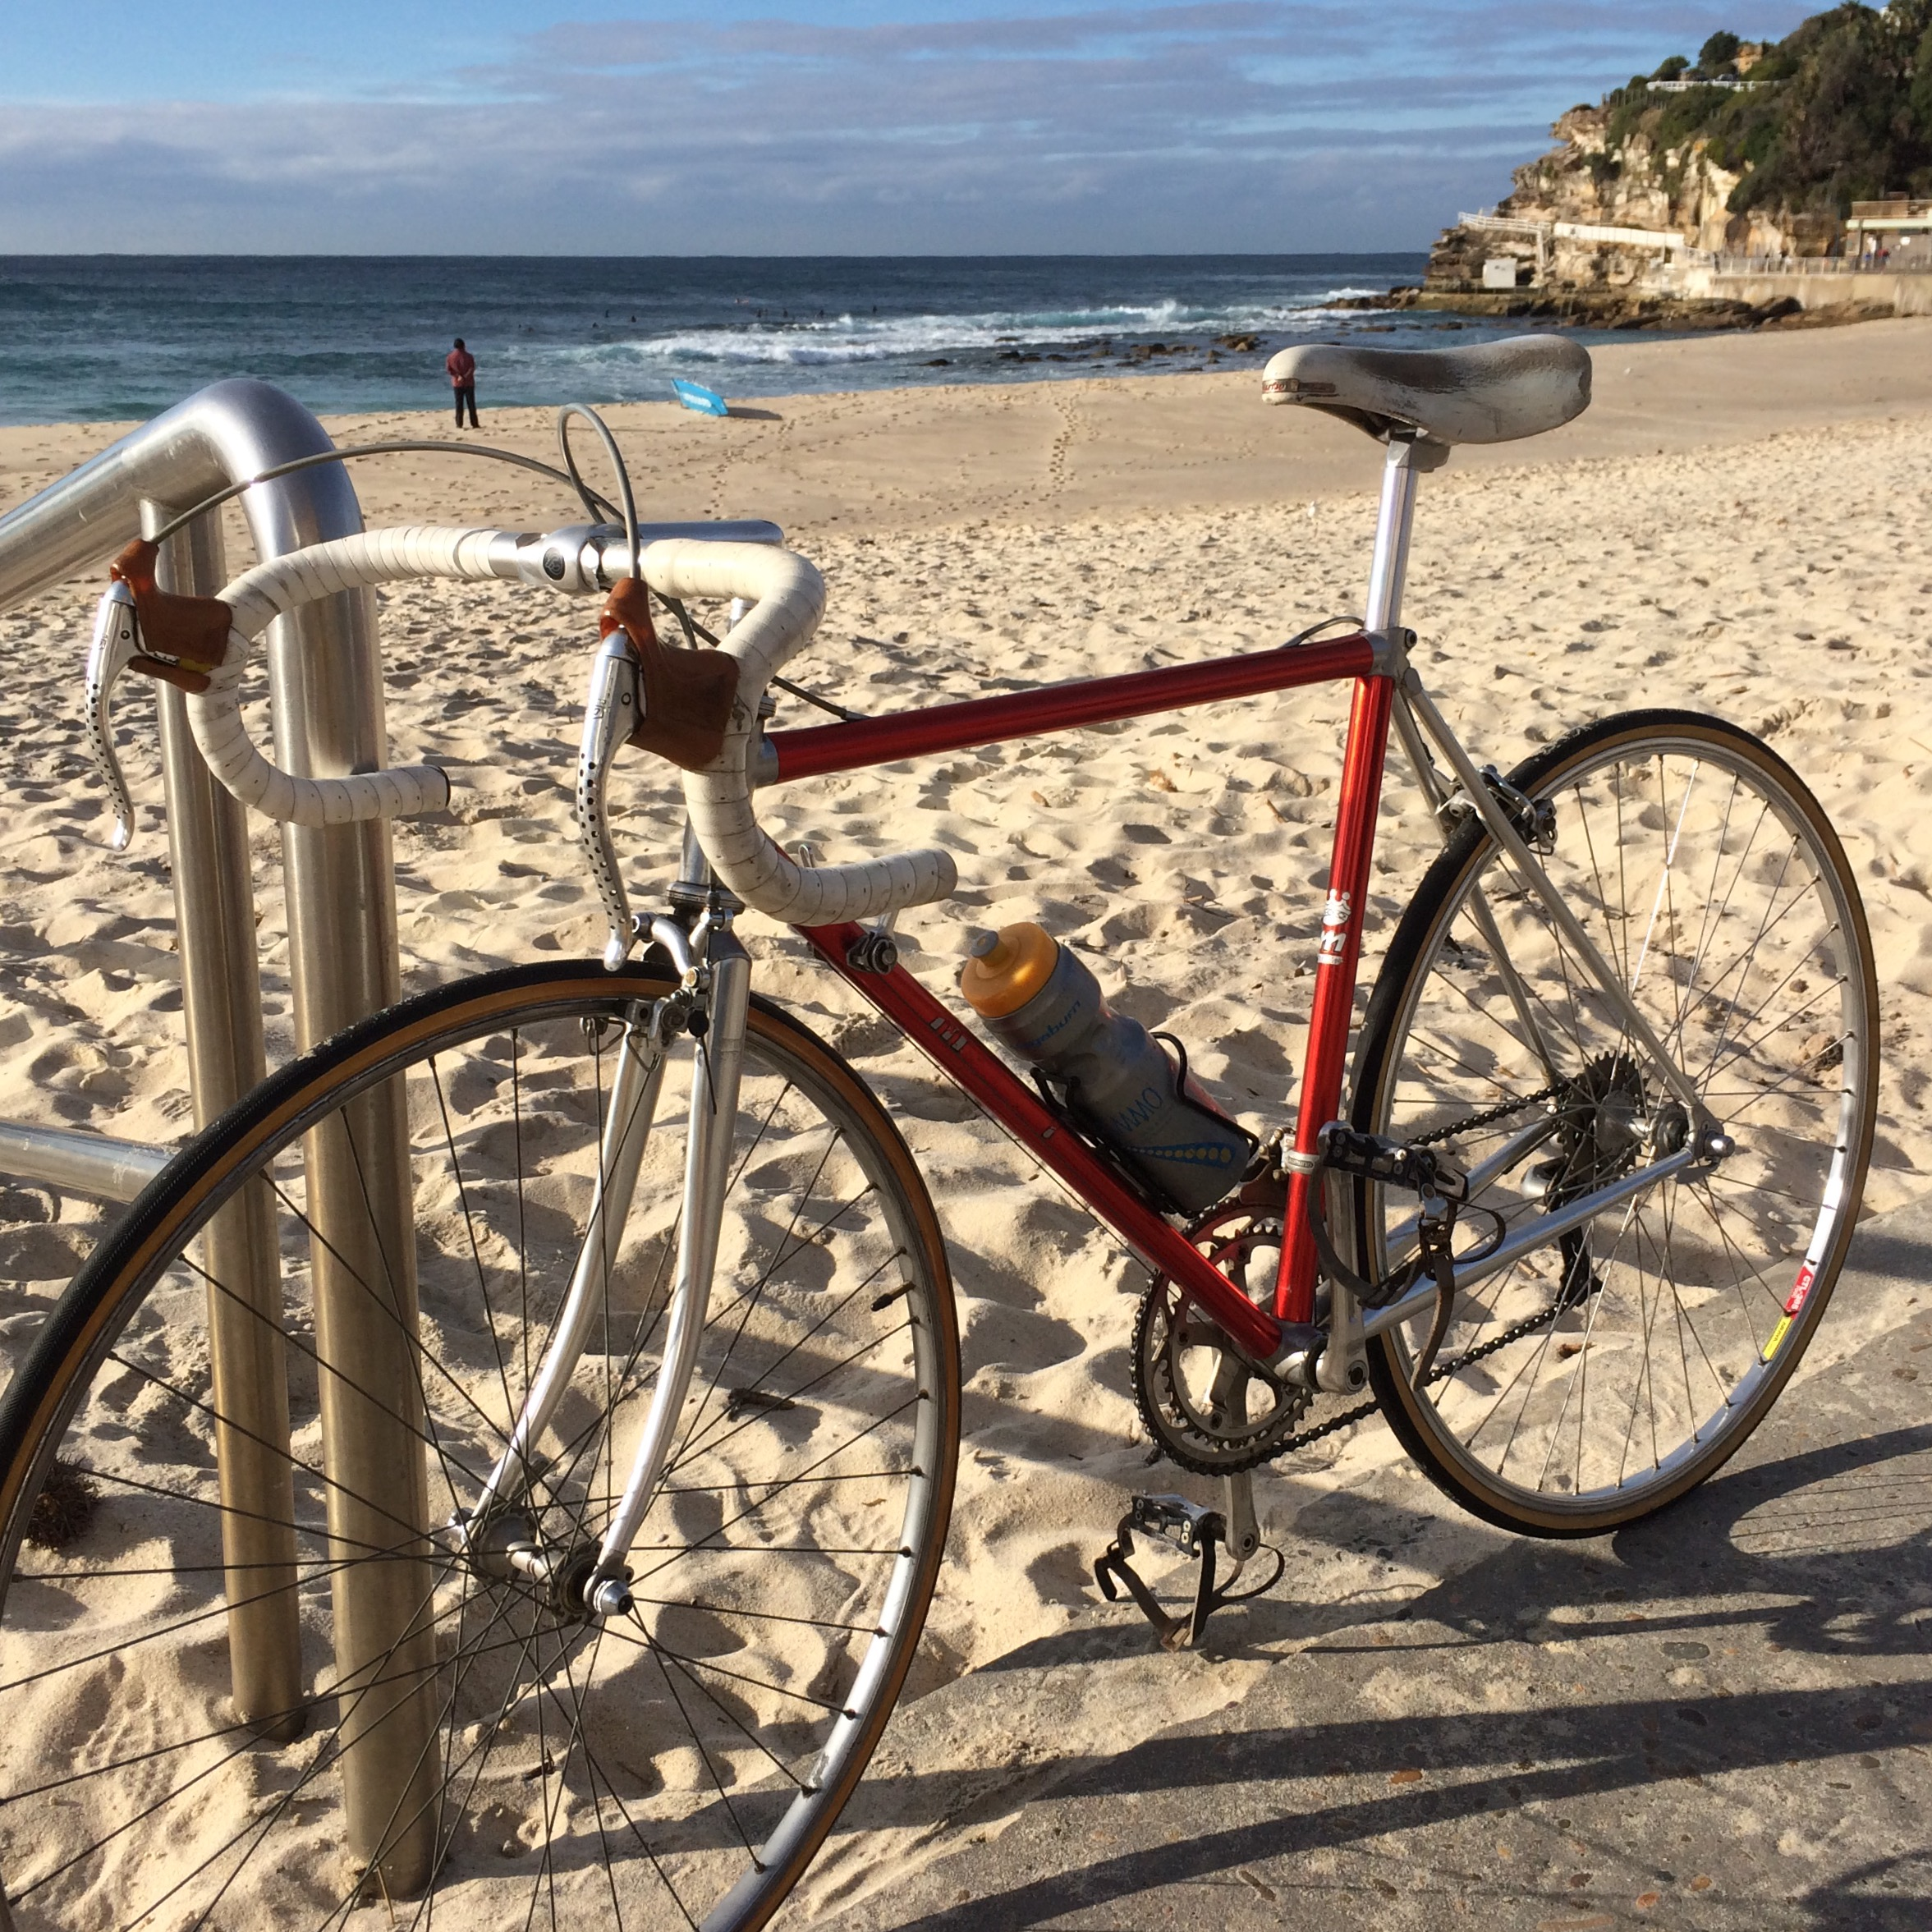 Eroica Vitus 979 #1 - this one was Size 50 and too small